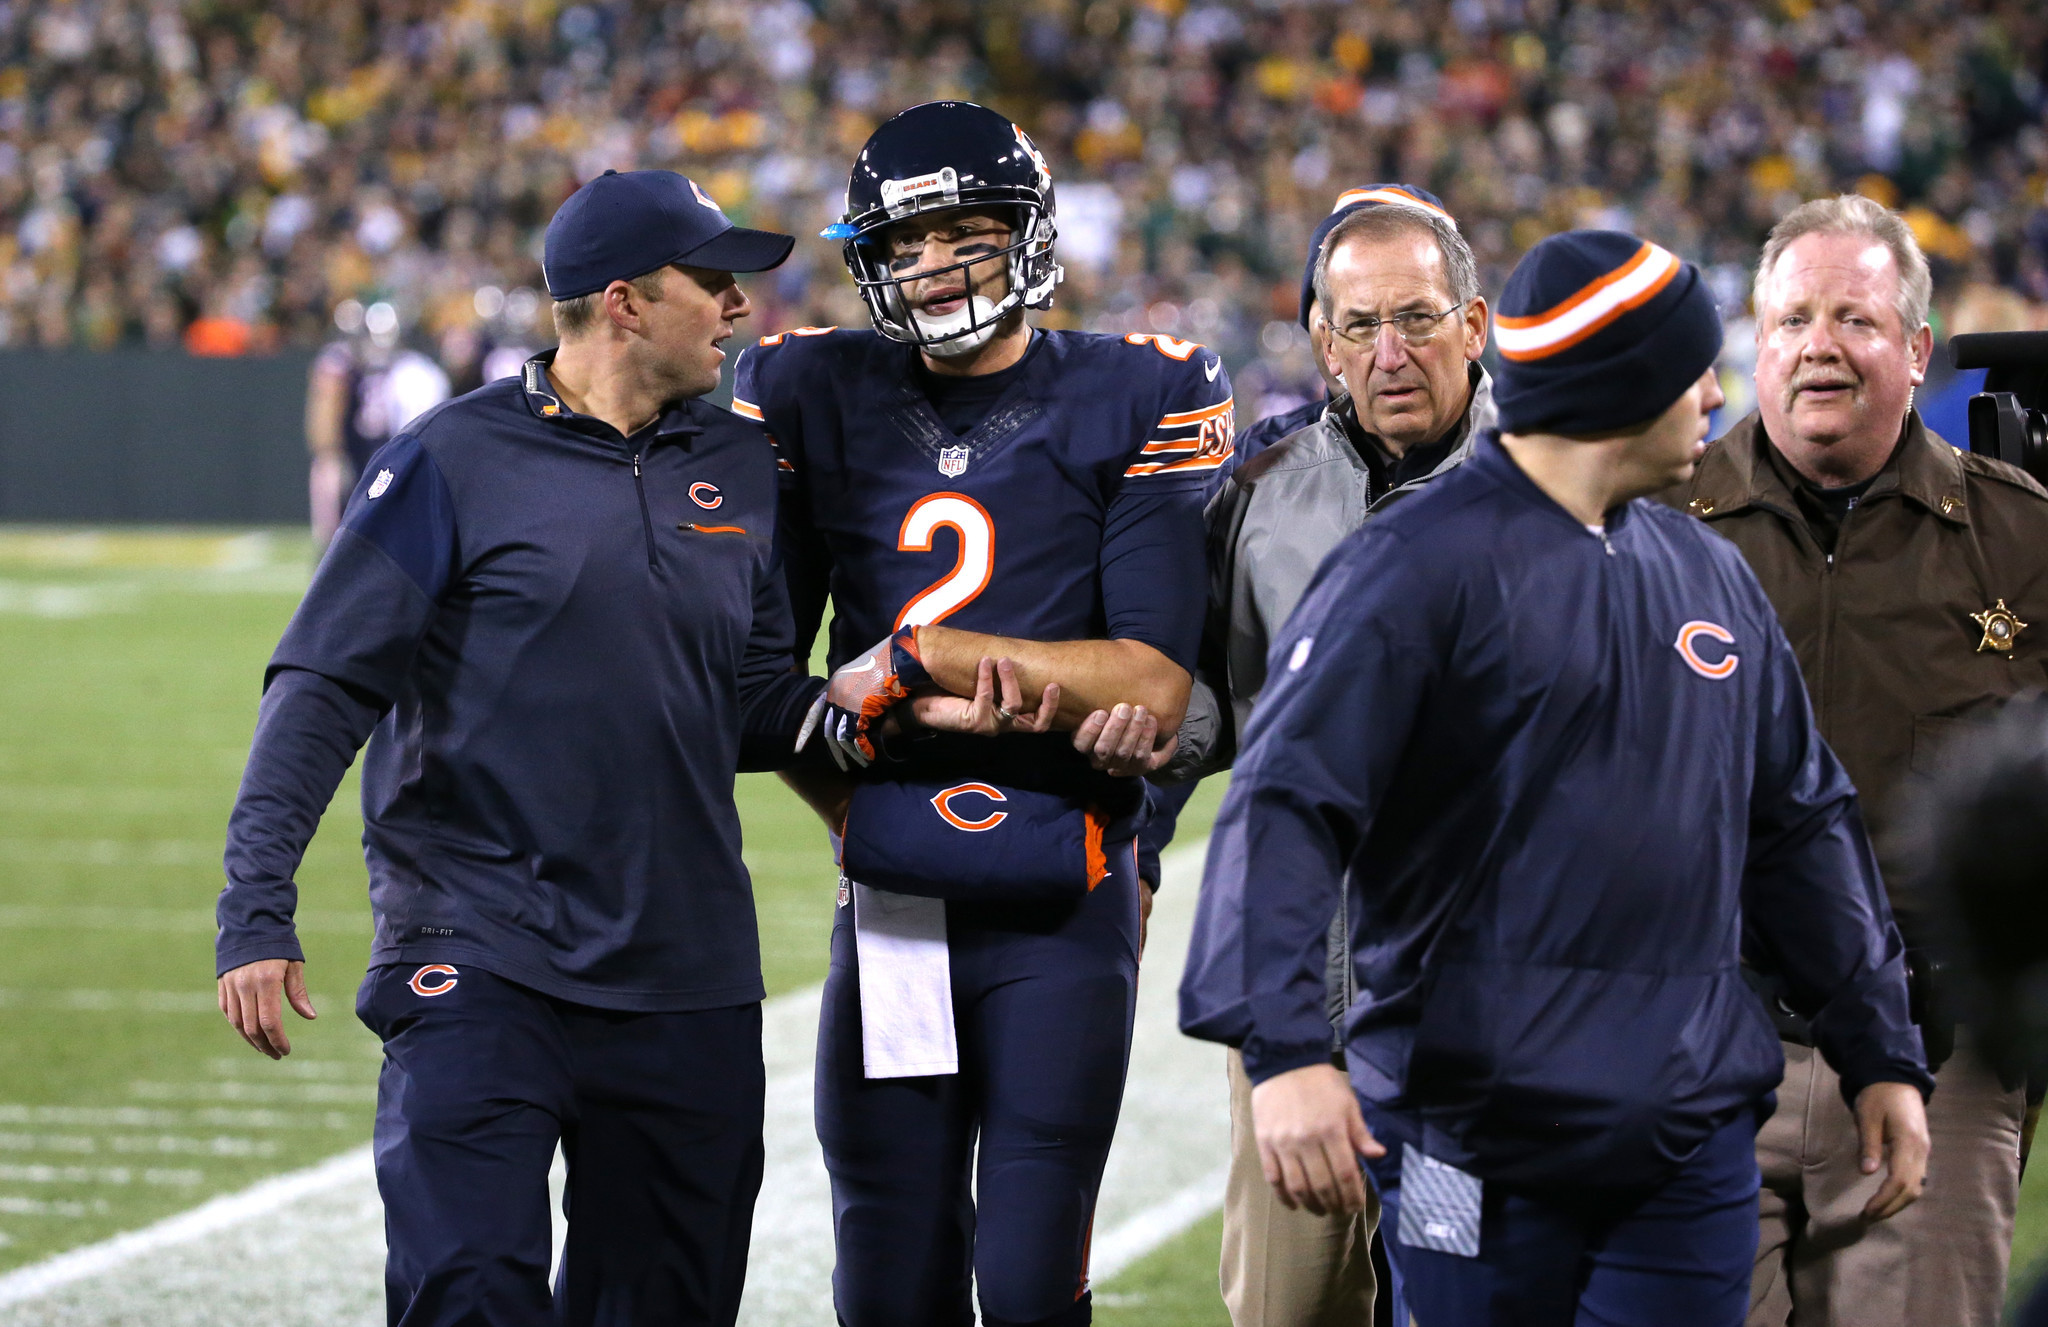 Ct-bears-roster-moves-spt-20161024